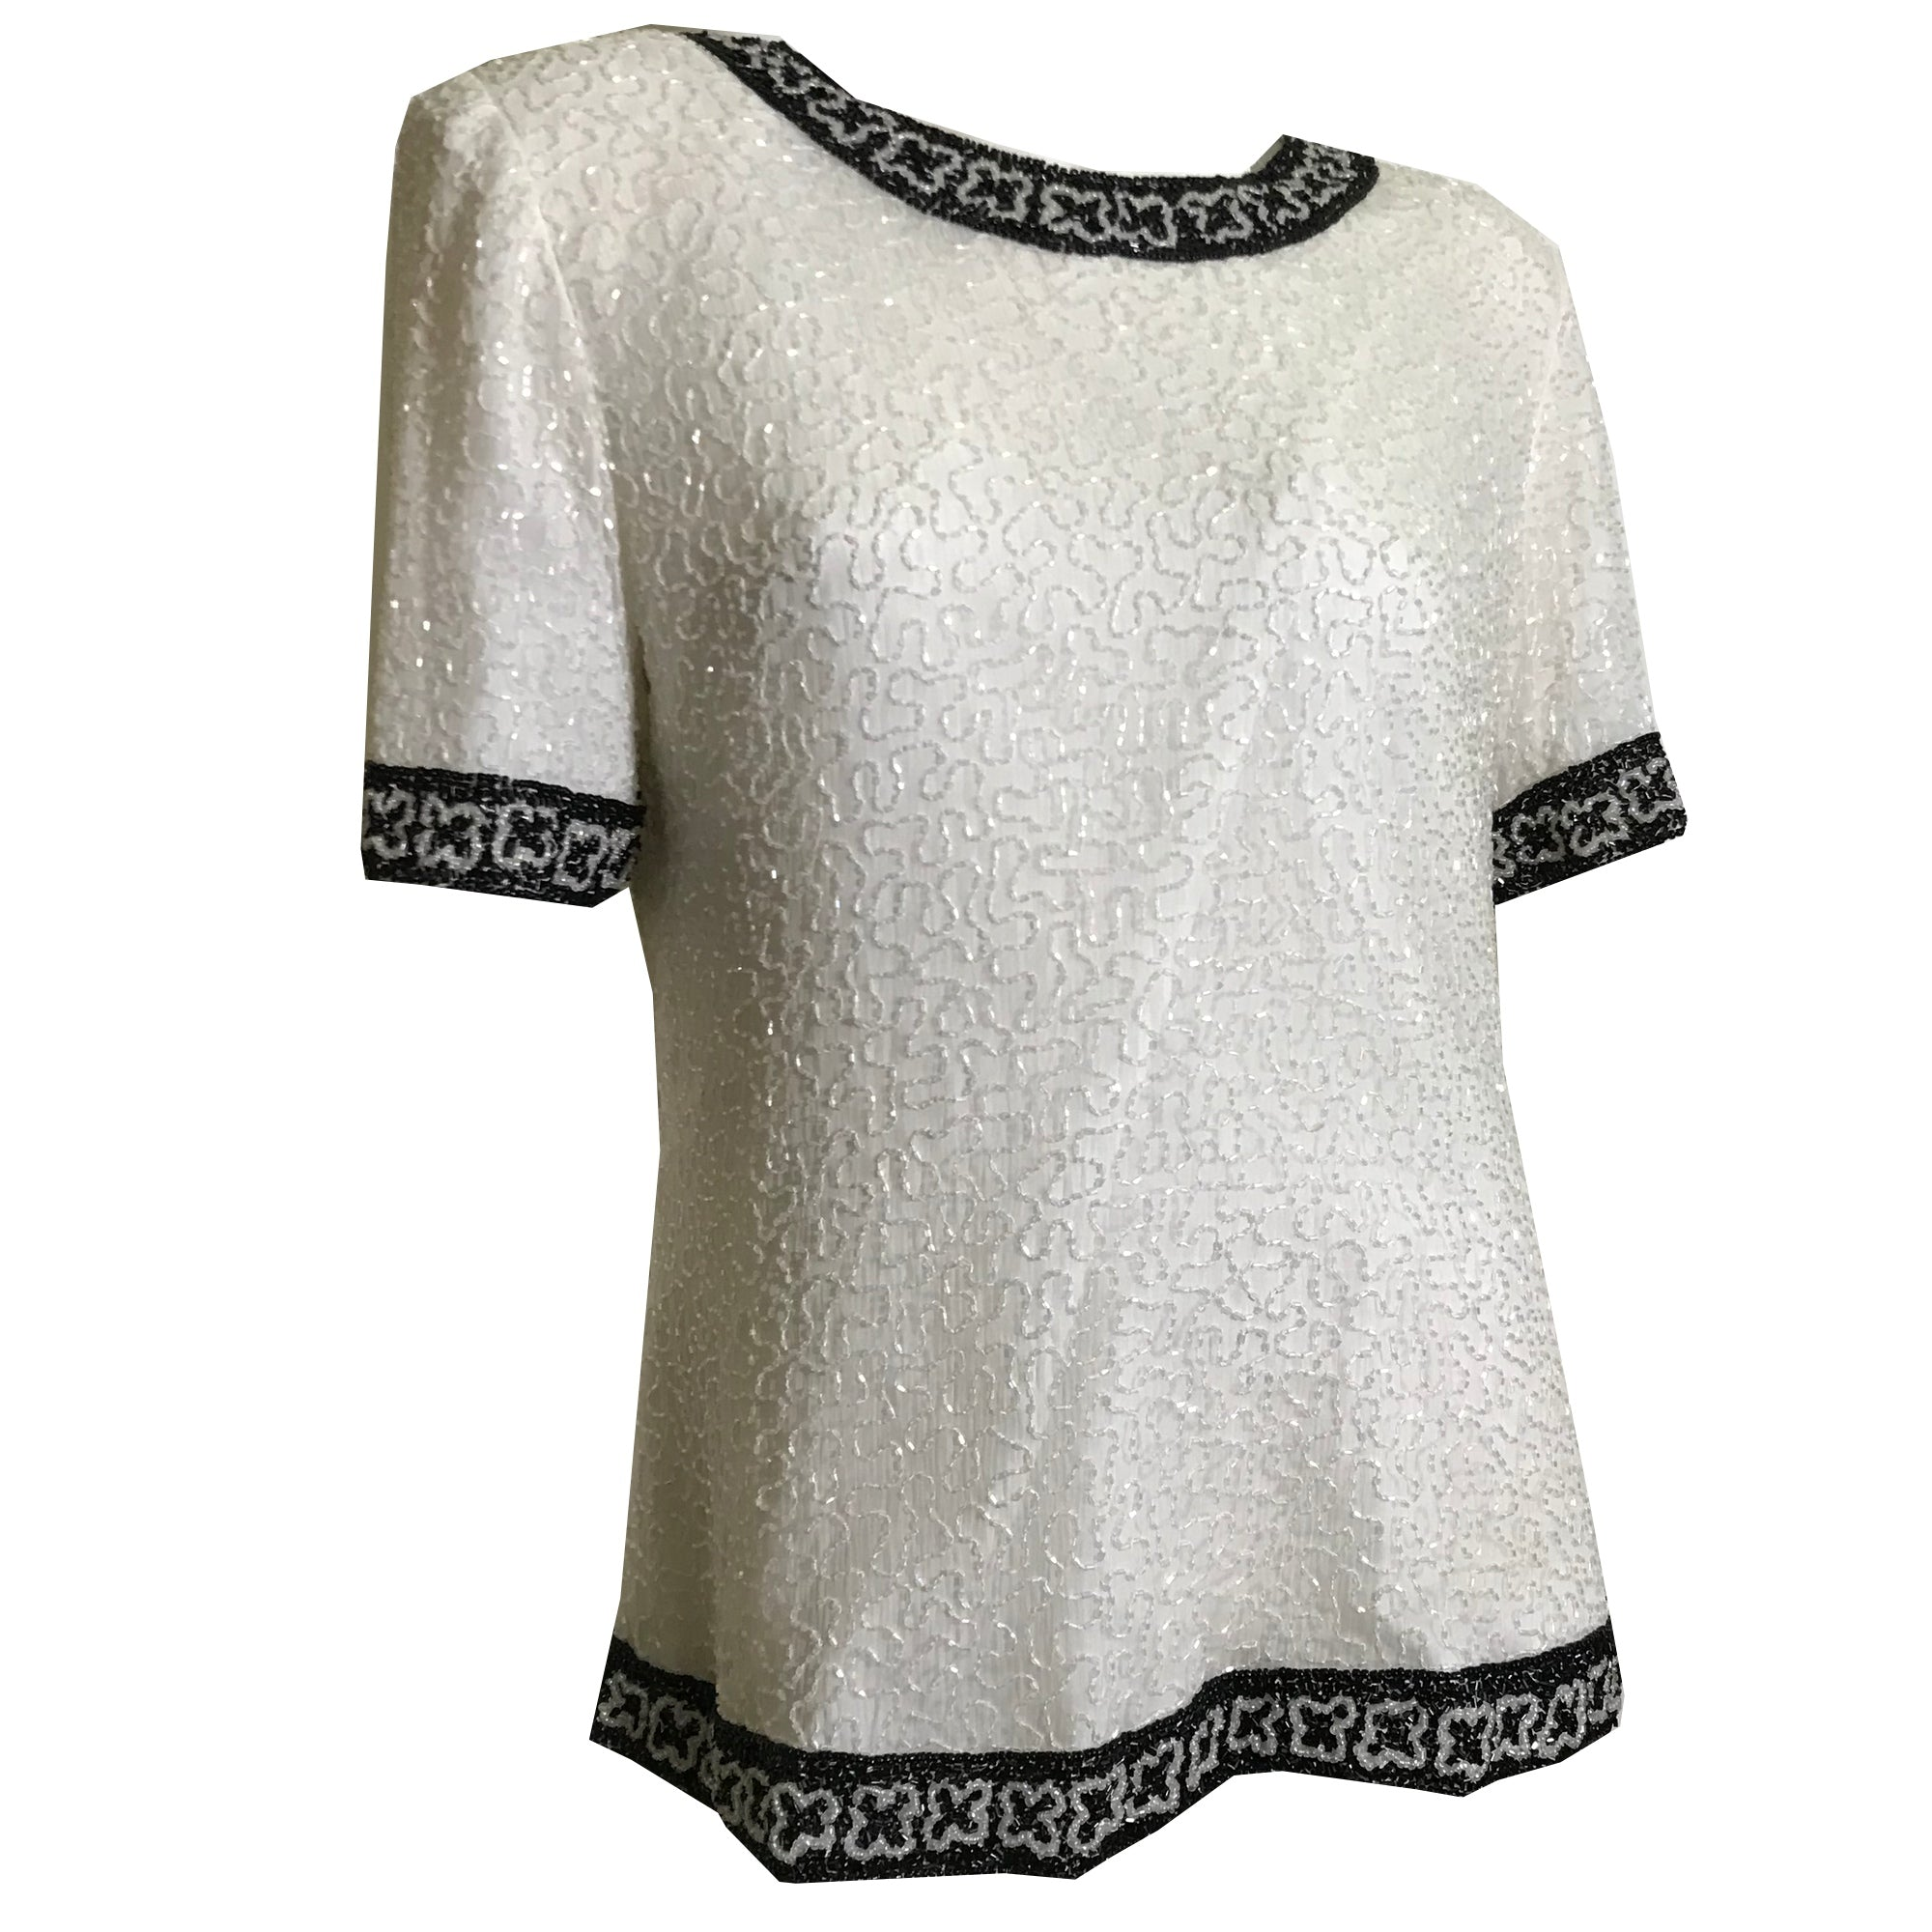 Black and White Beaded Cocktail Blouse with Padded Shoulders circa 1980s